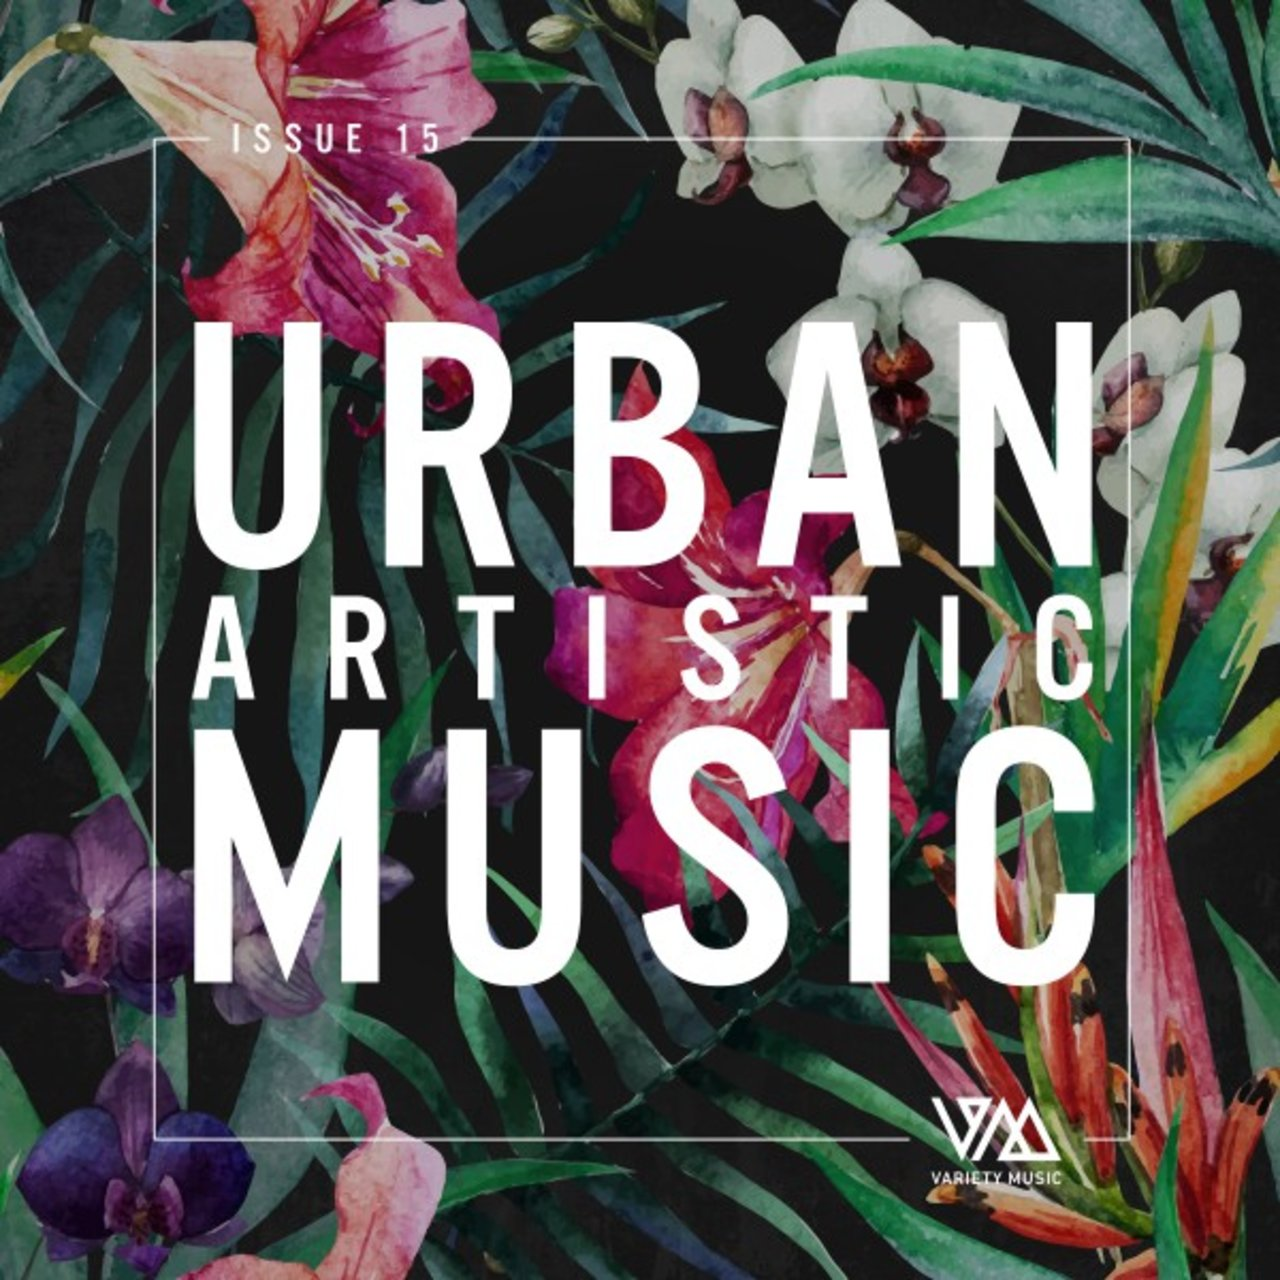 Urban Artistic Music Issue 15